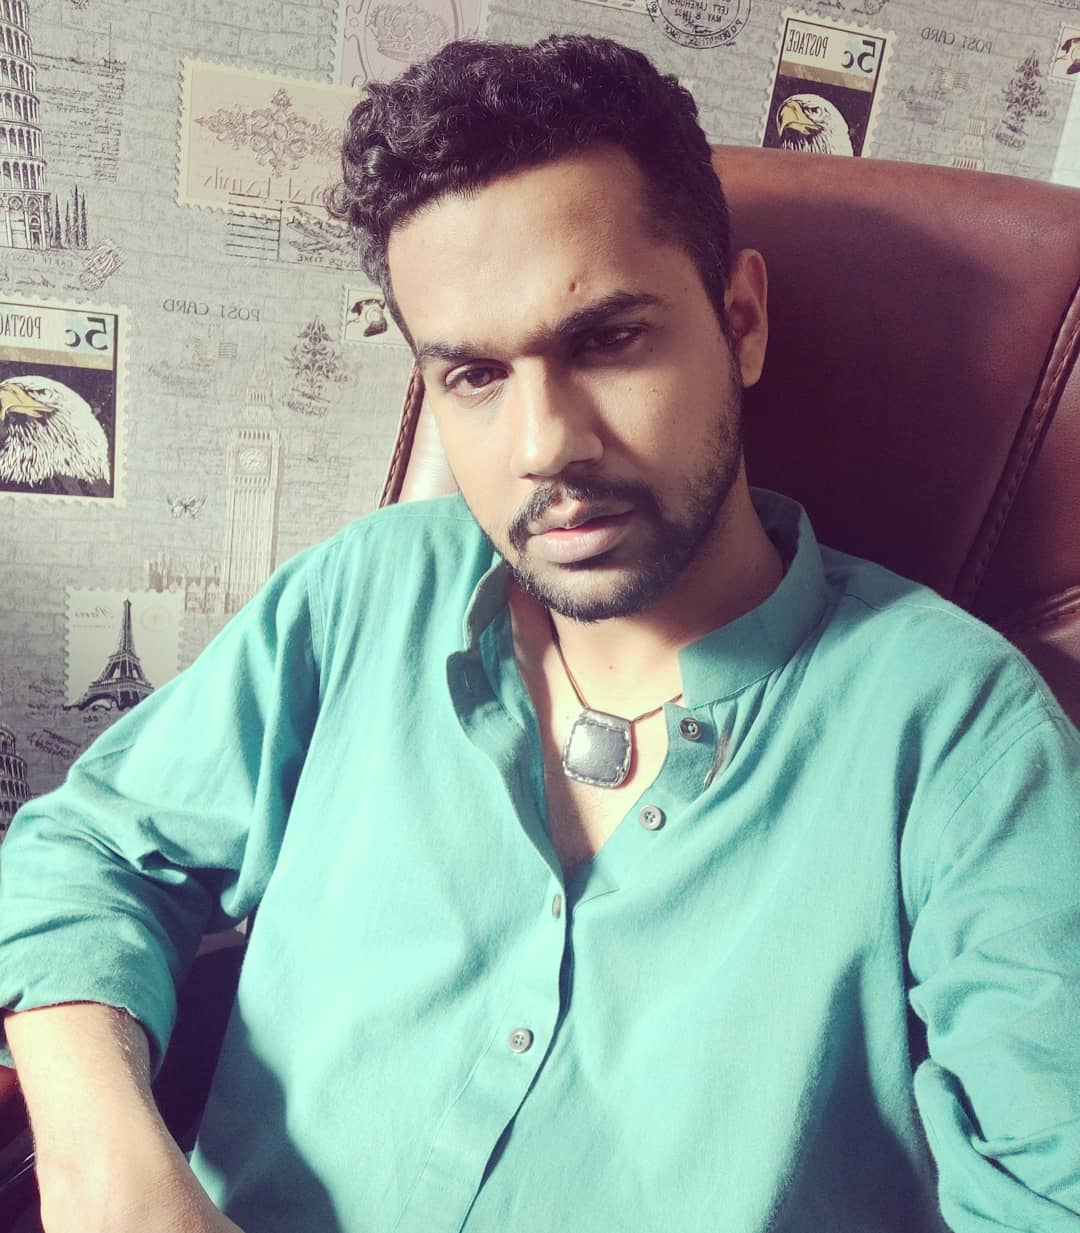 ali gul pir opens up about fia notice slams certain celeb for curbing freedom of expression